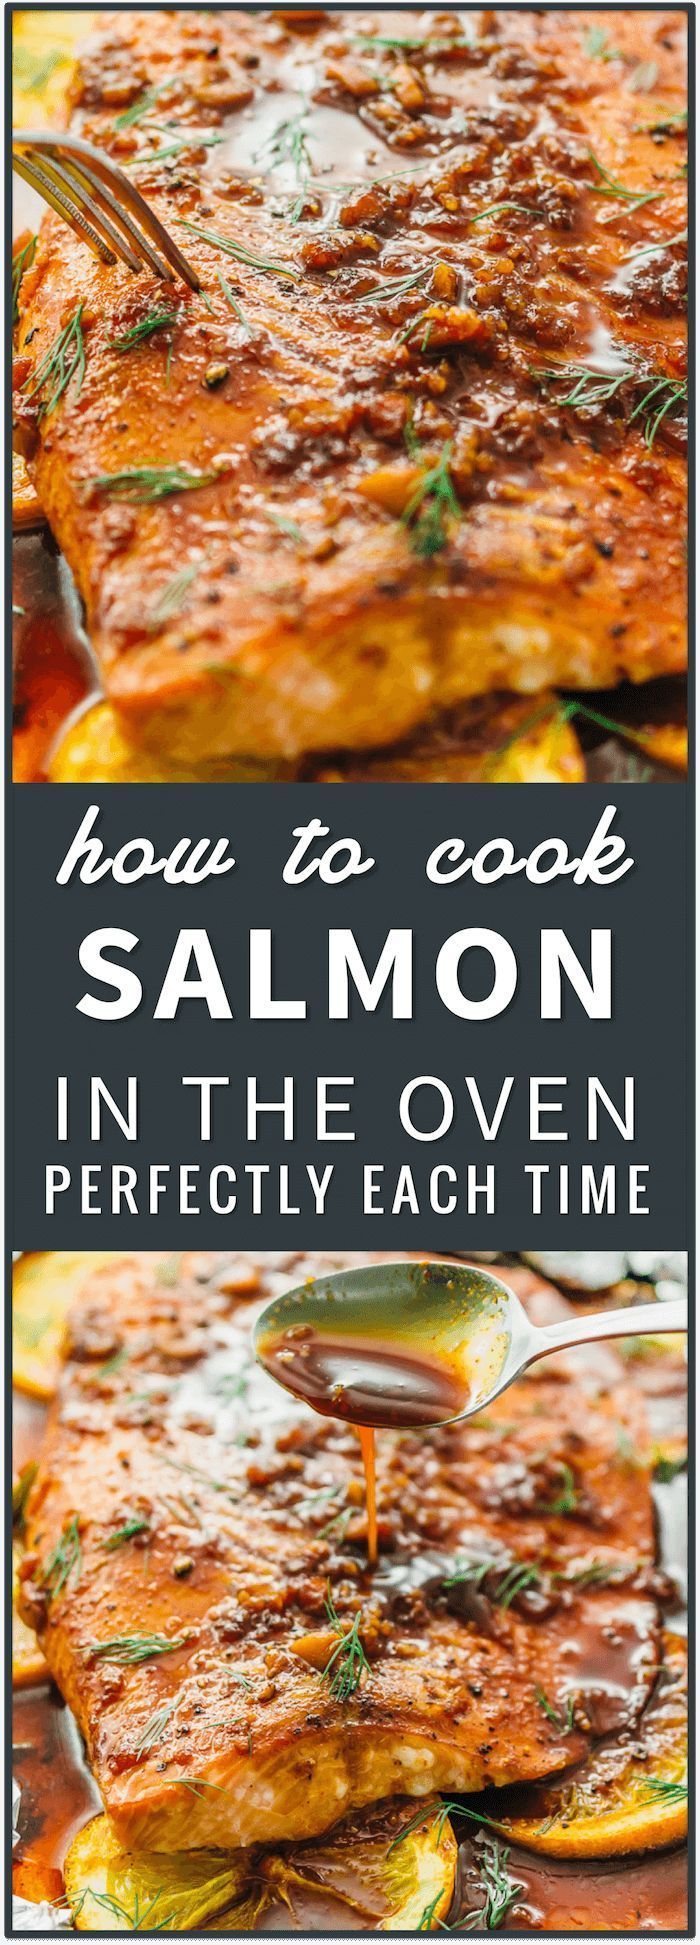 Learn how to cook salmon in the oven perfectly every time using this smooth foolproof recipe. in a pan, on the grill, in foil, frozen salmon, baked, pan seared, best, patties, healthy, salad, dinner, honey, blackened via savory tooth